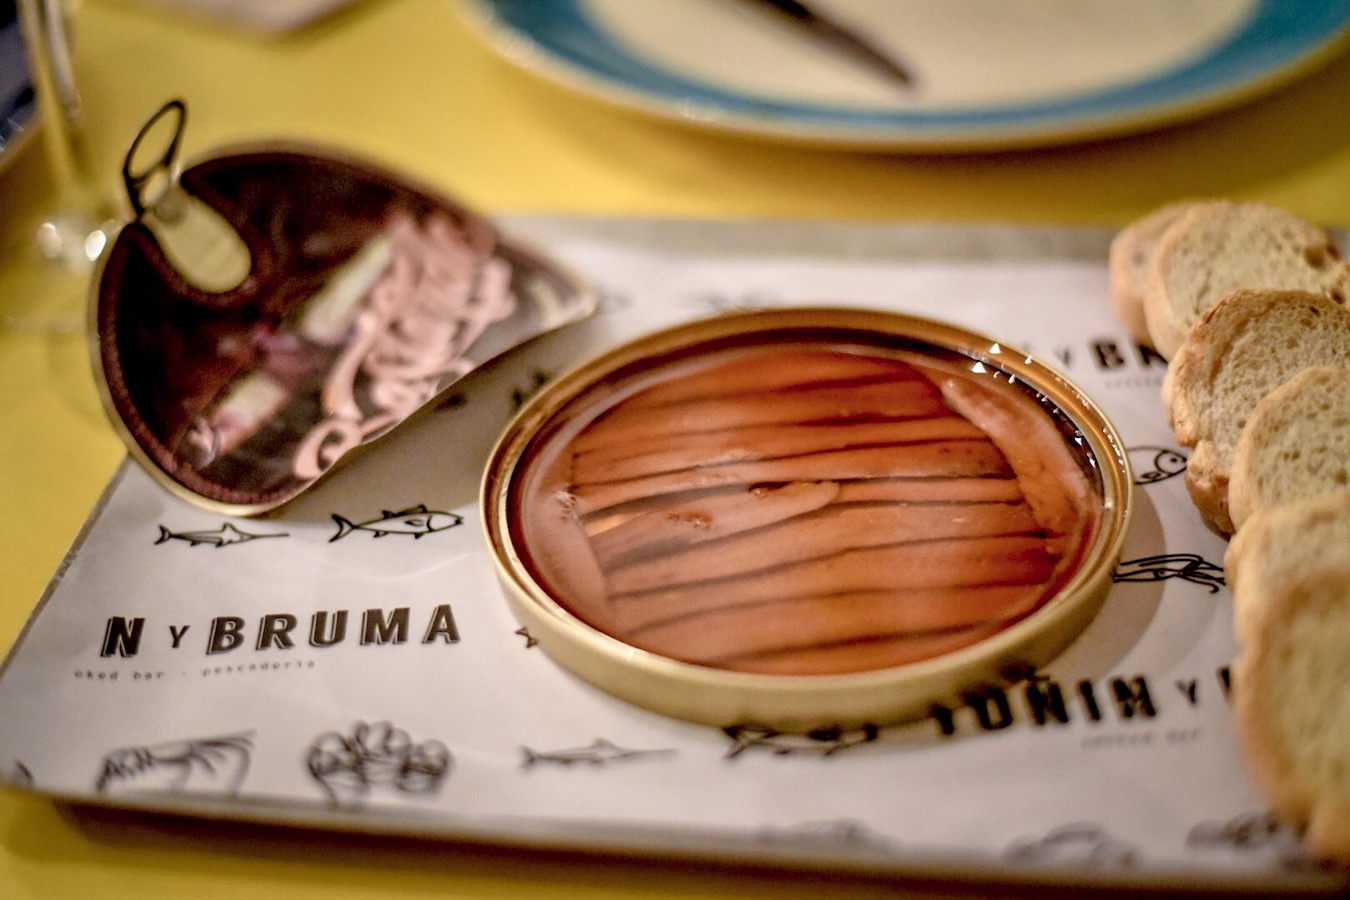 Eating the best gourmet Cantabrian anchovies at Toñin y Bruma in Santander.